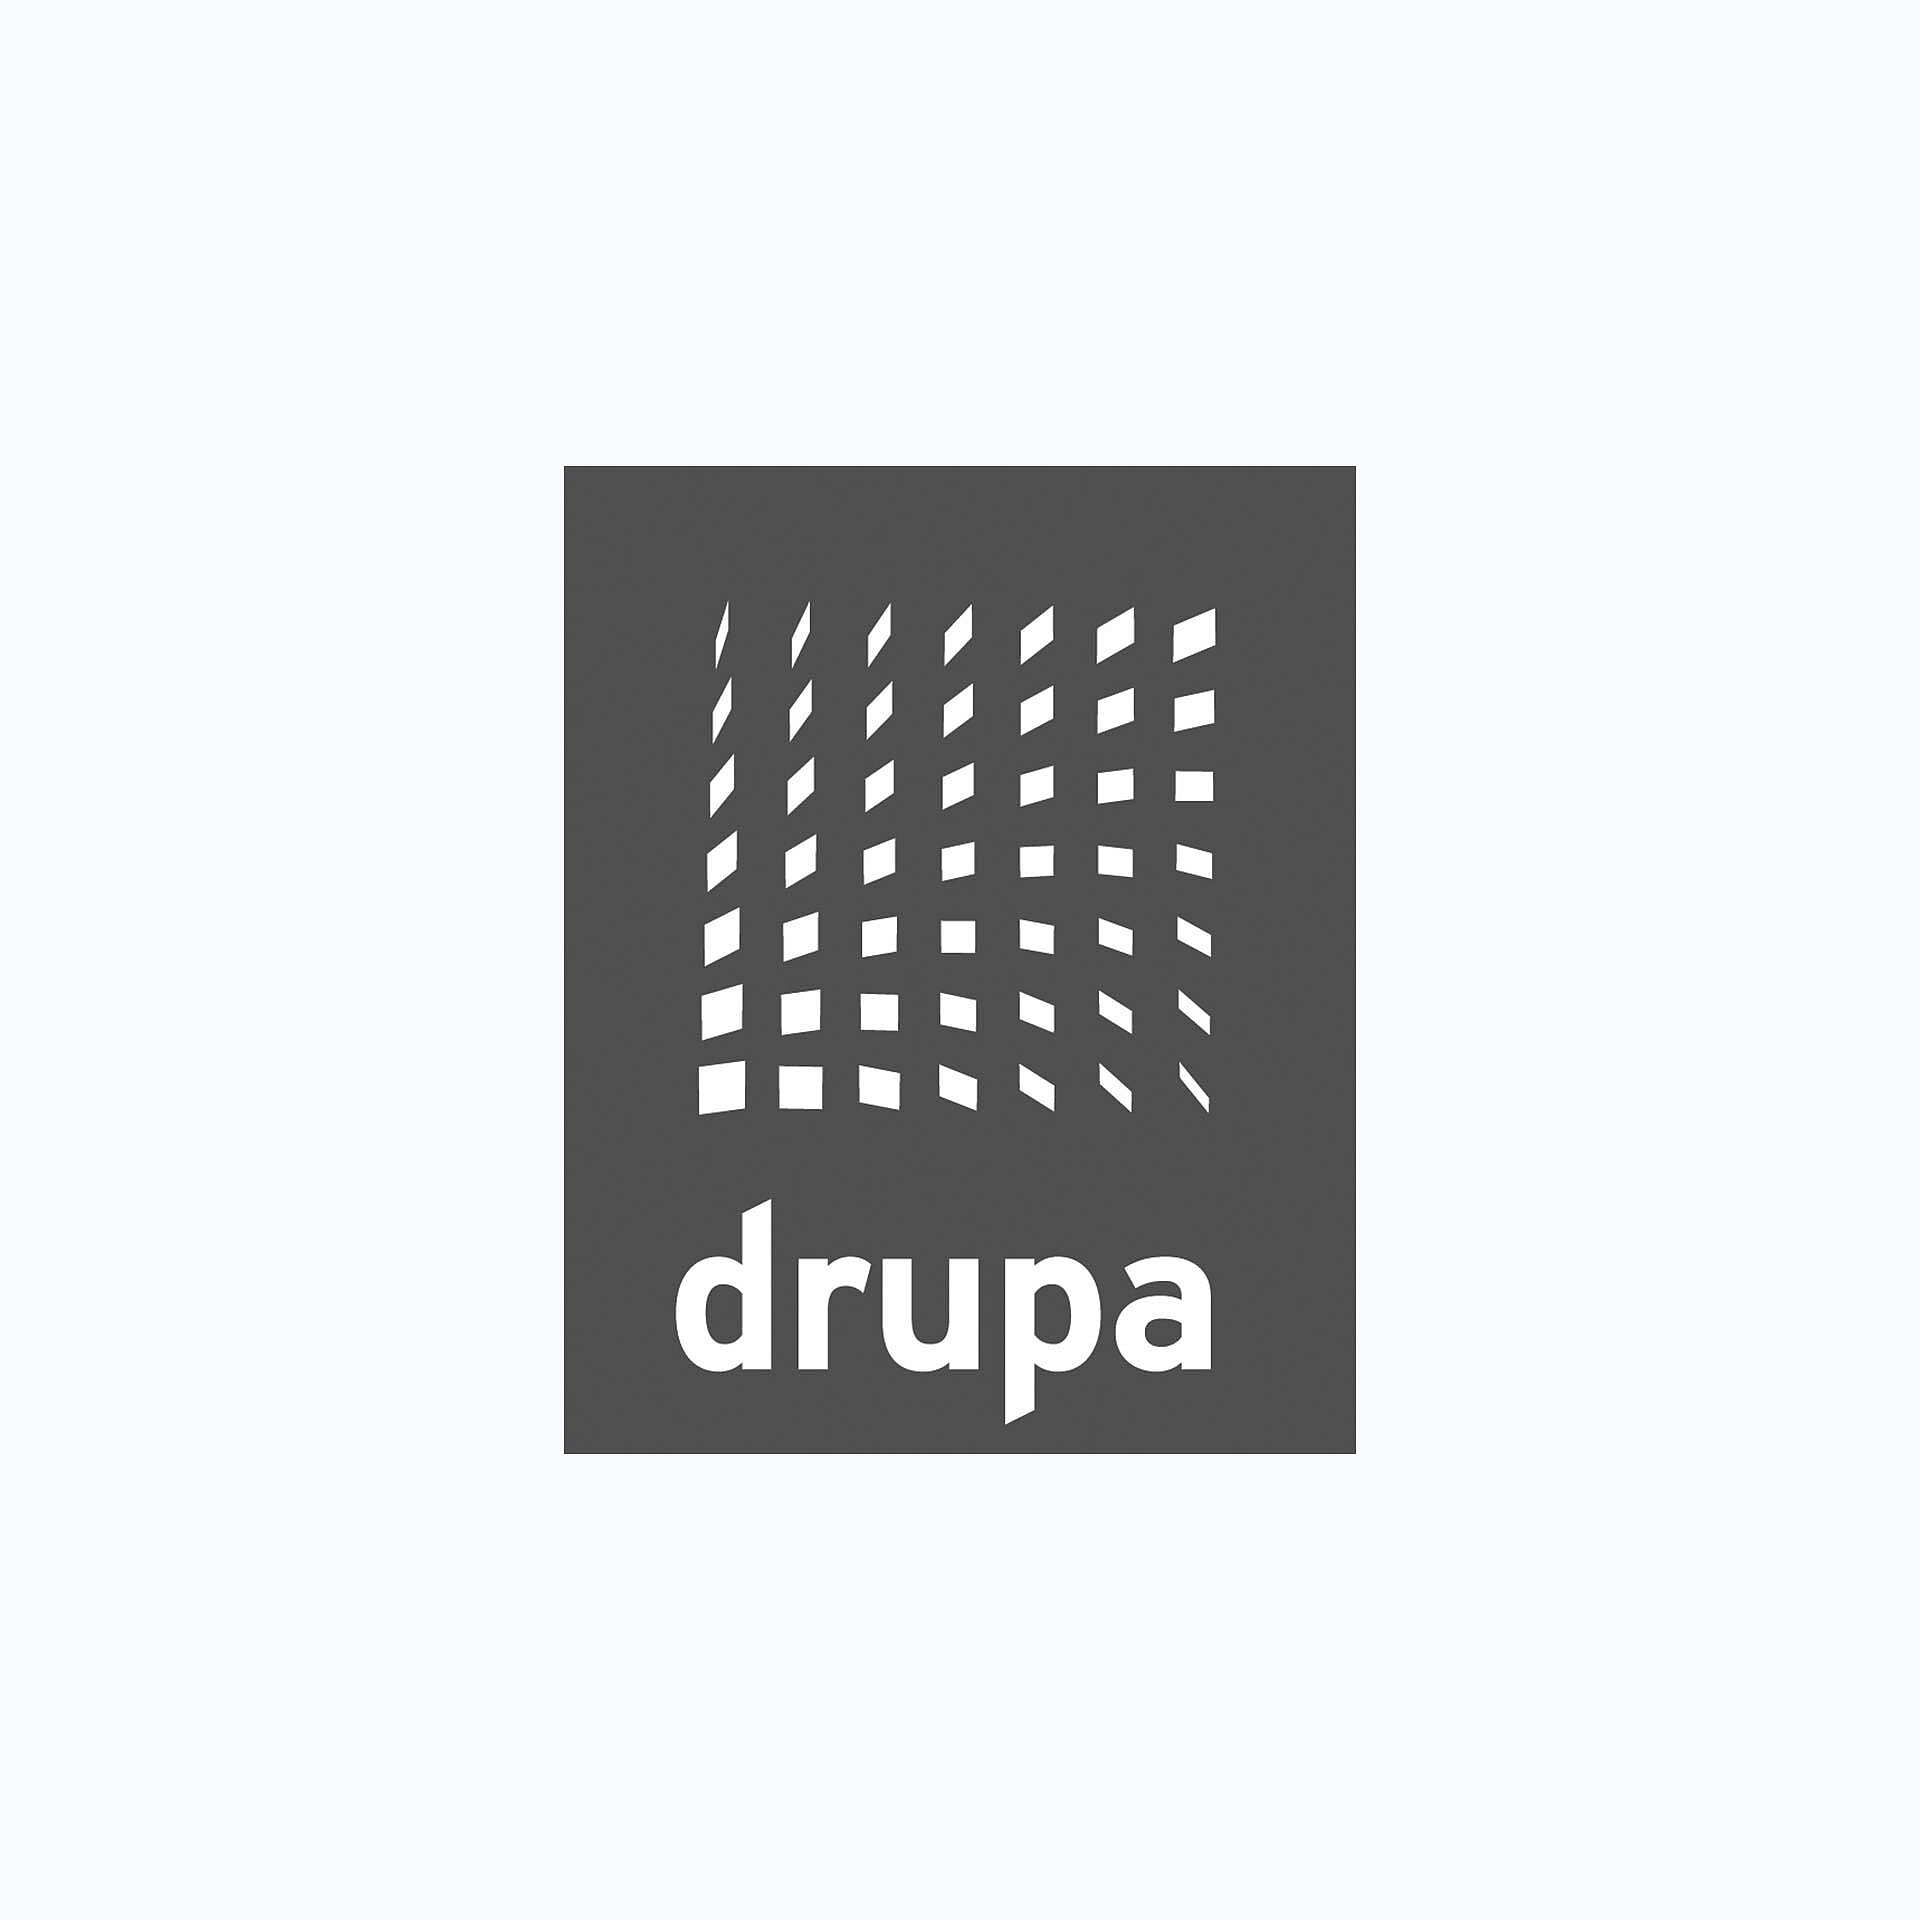 [Translate to Chinese:] drupa